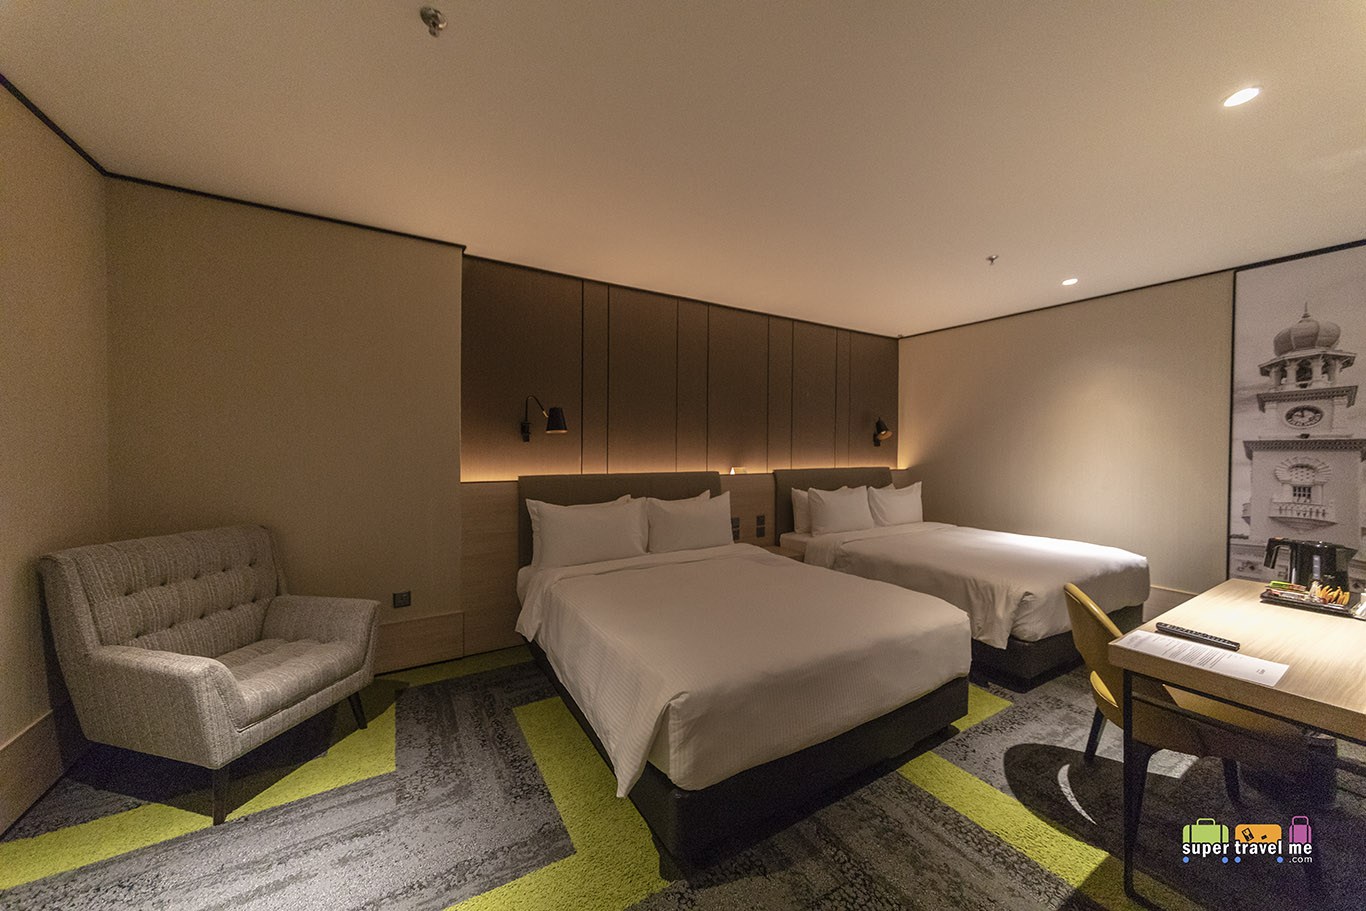 Aerotel Kuala Lumpur Double Squared Room with 2 double beds